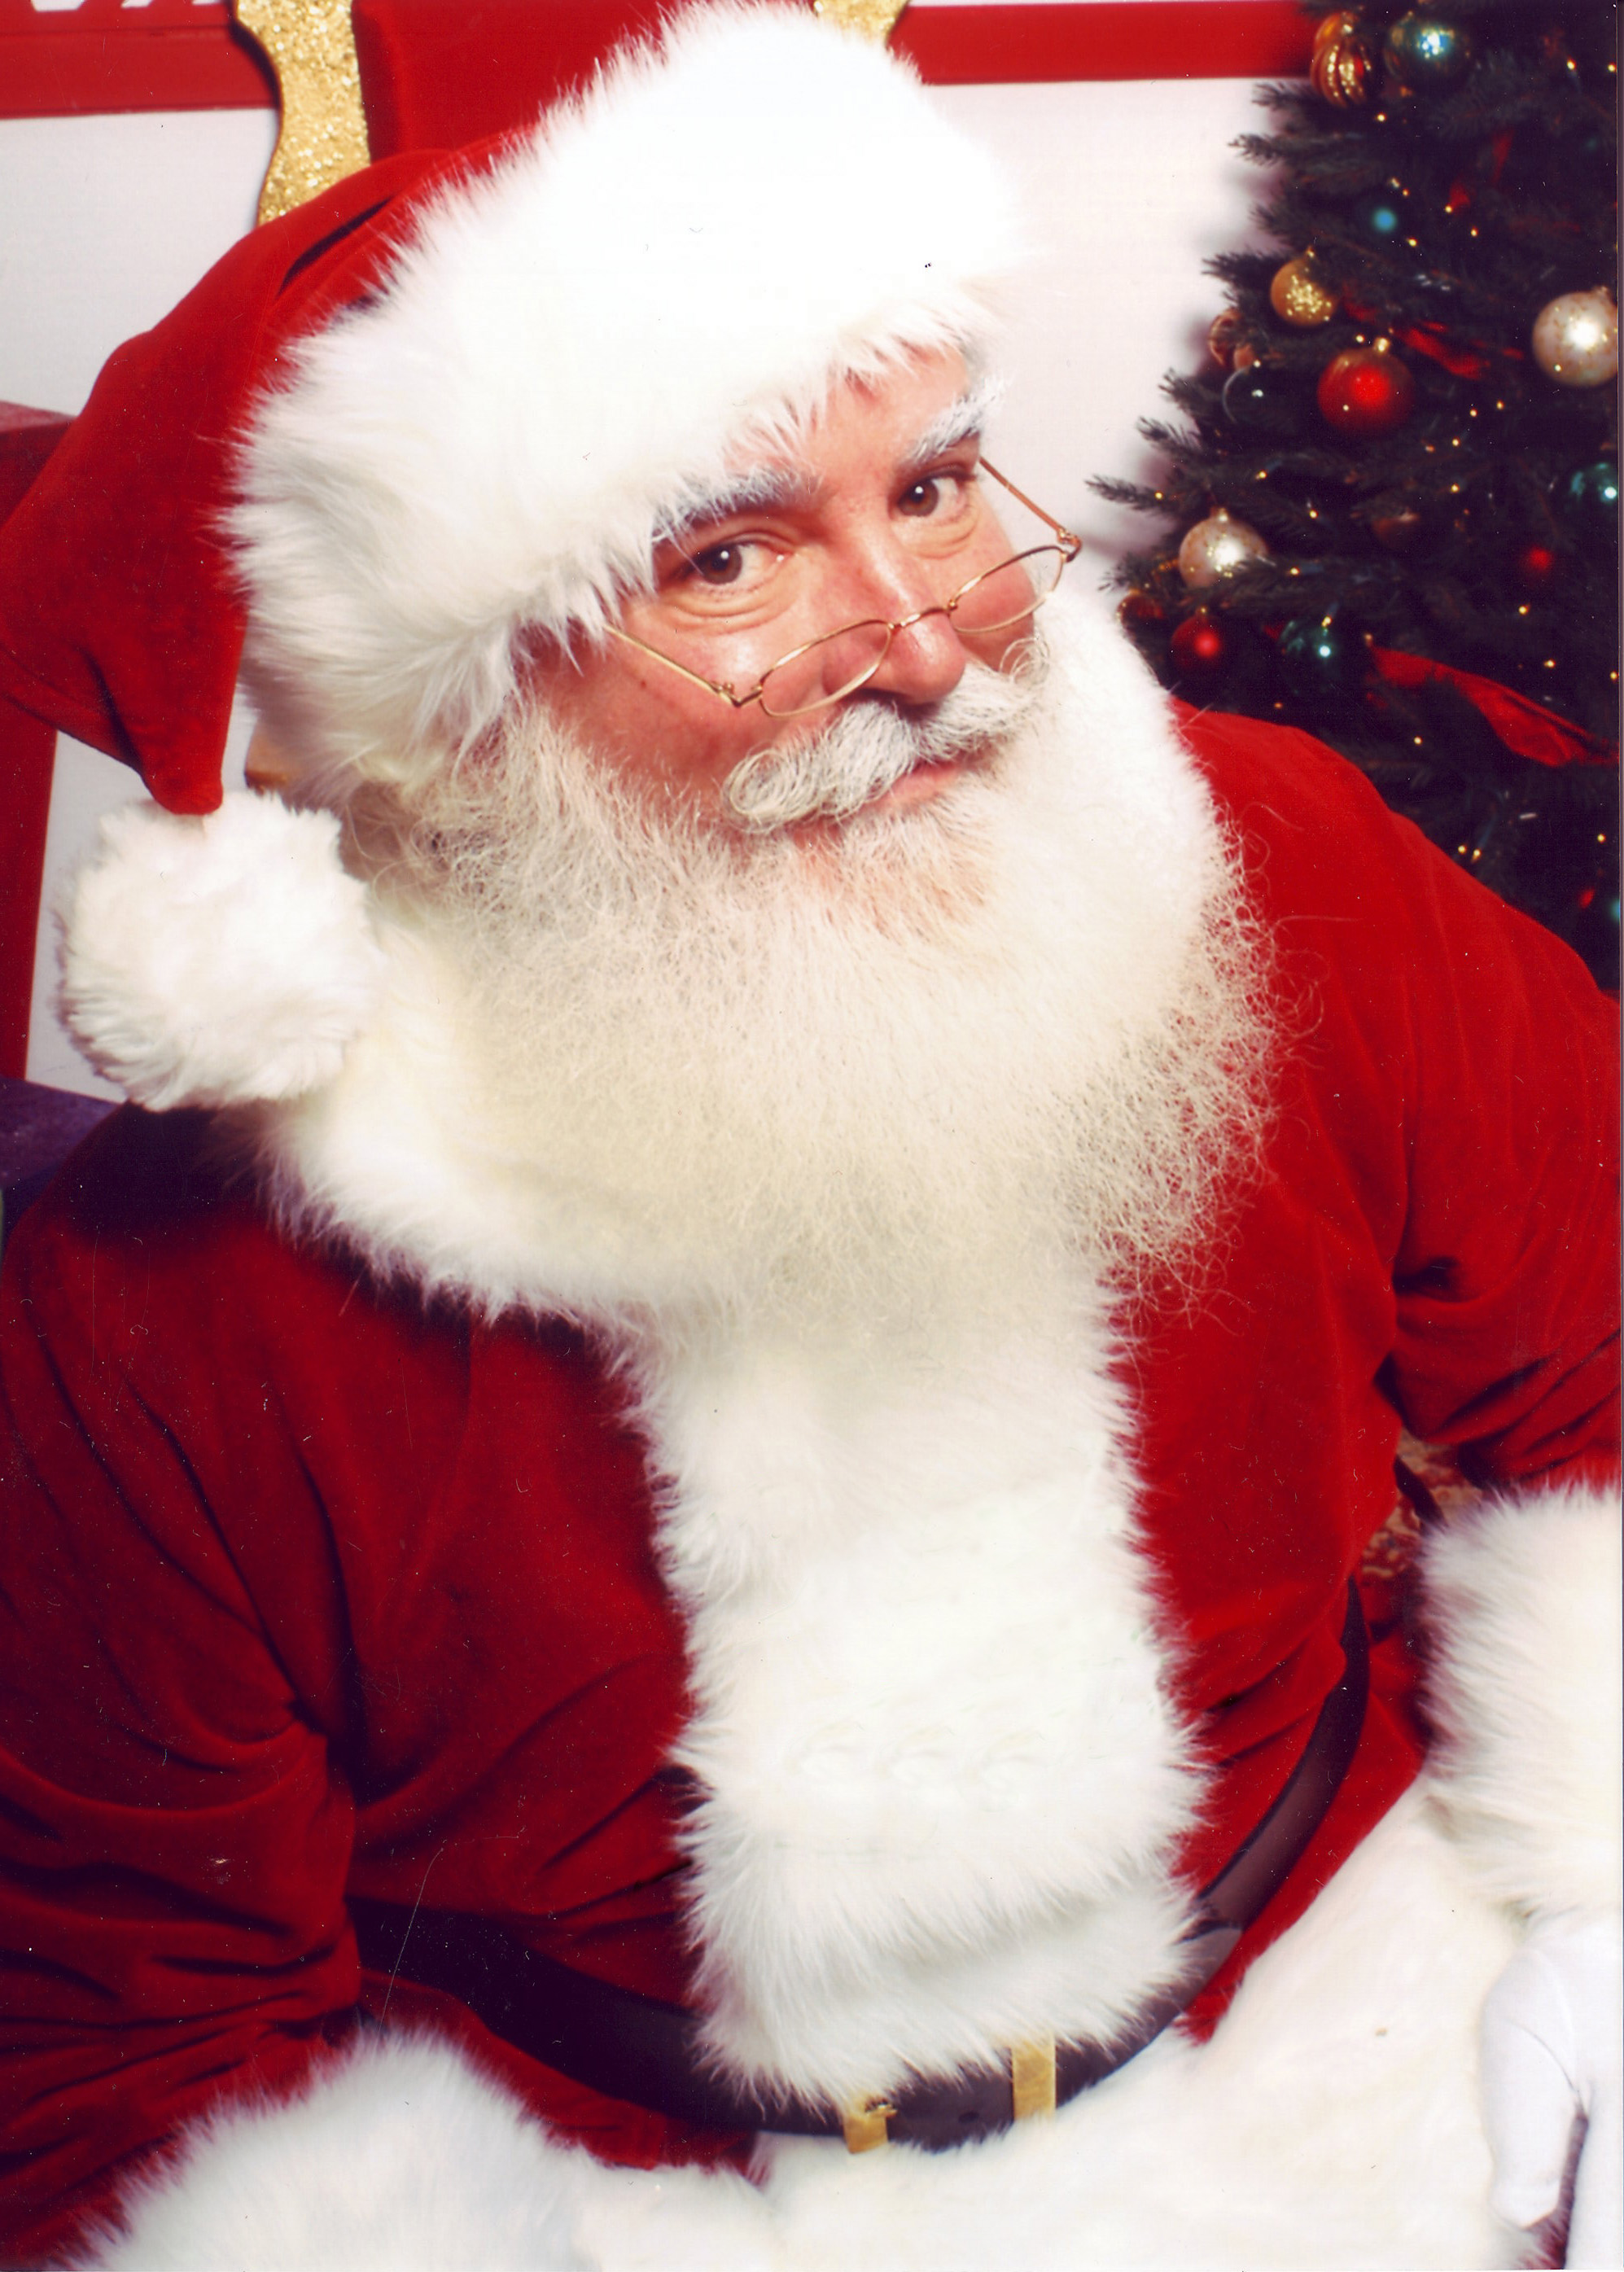 Jonathan_G_Meath_portrays_Santa_Claus.jp